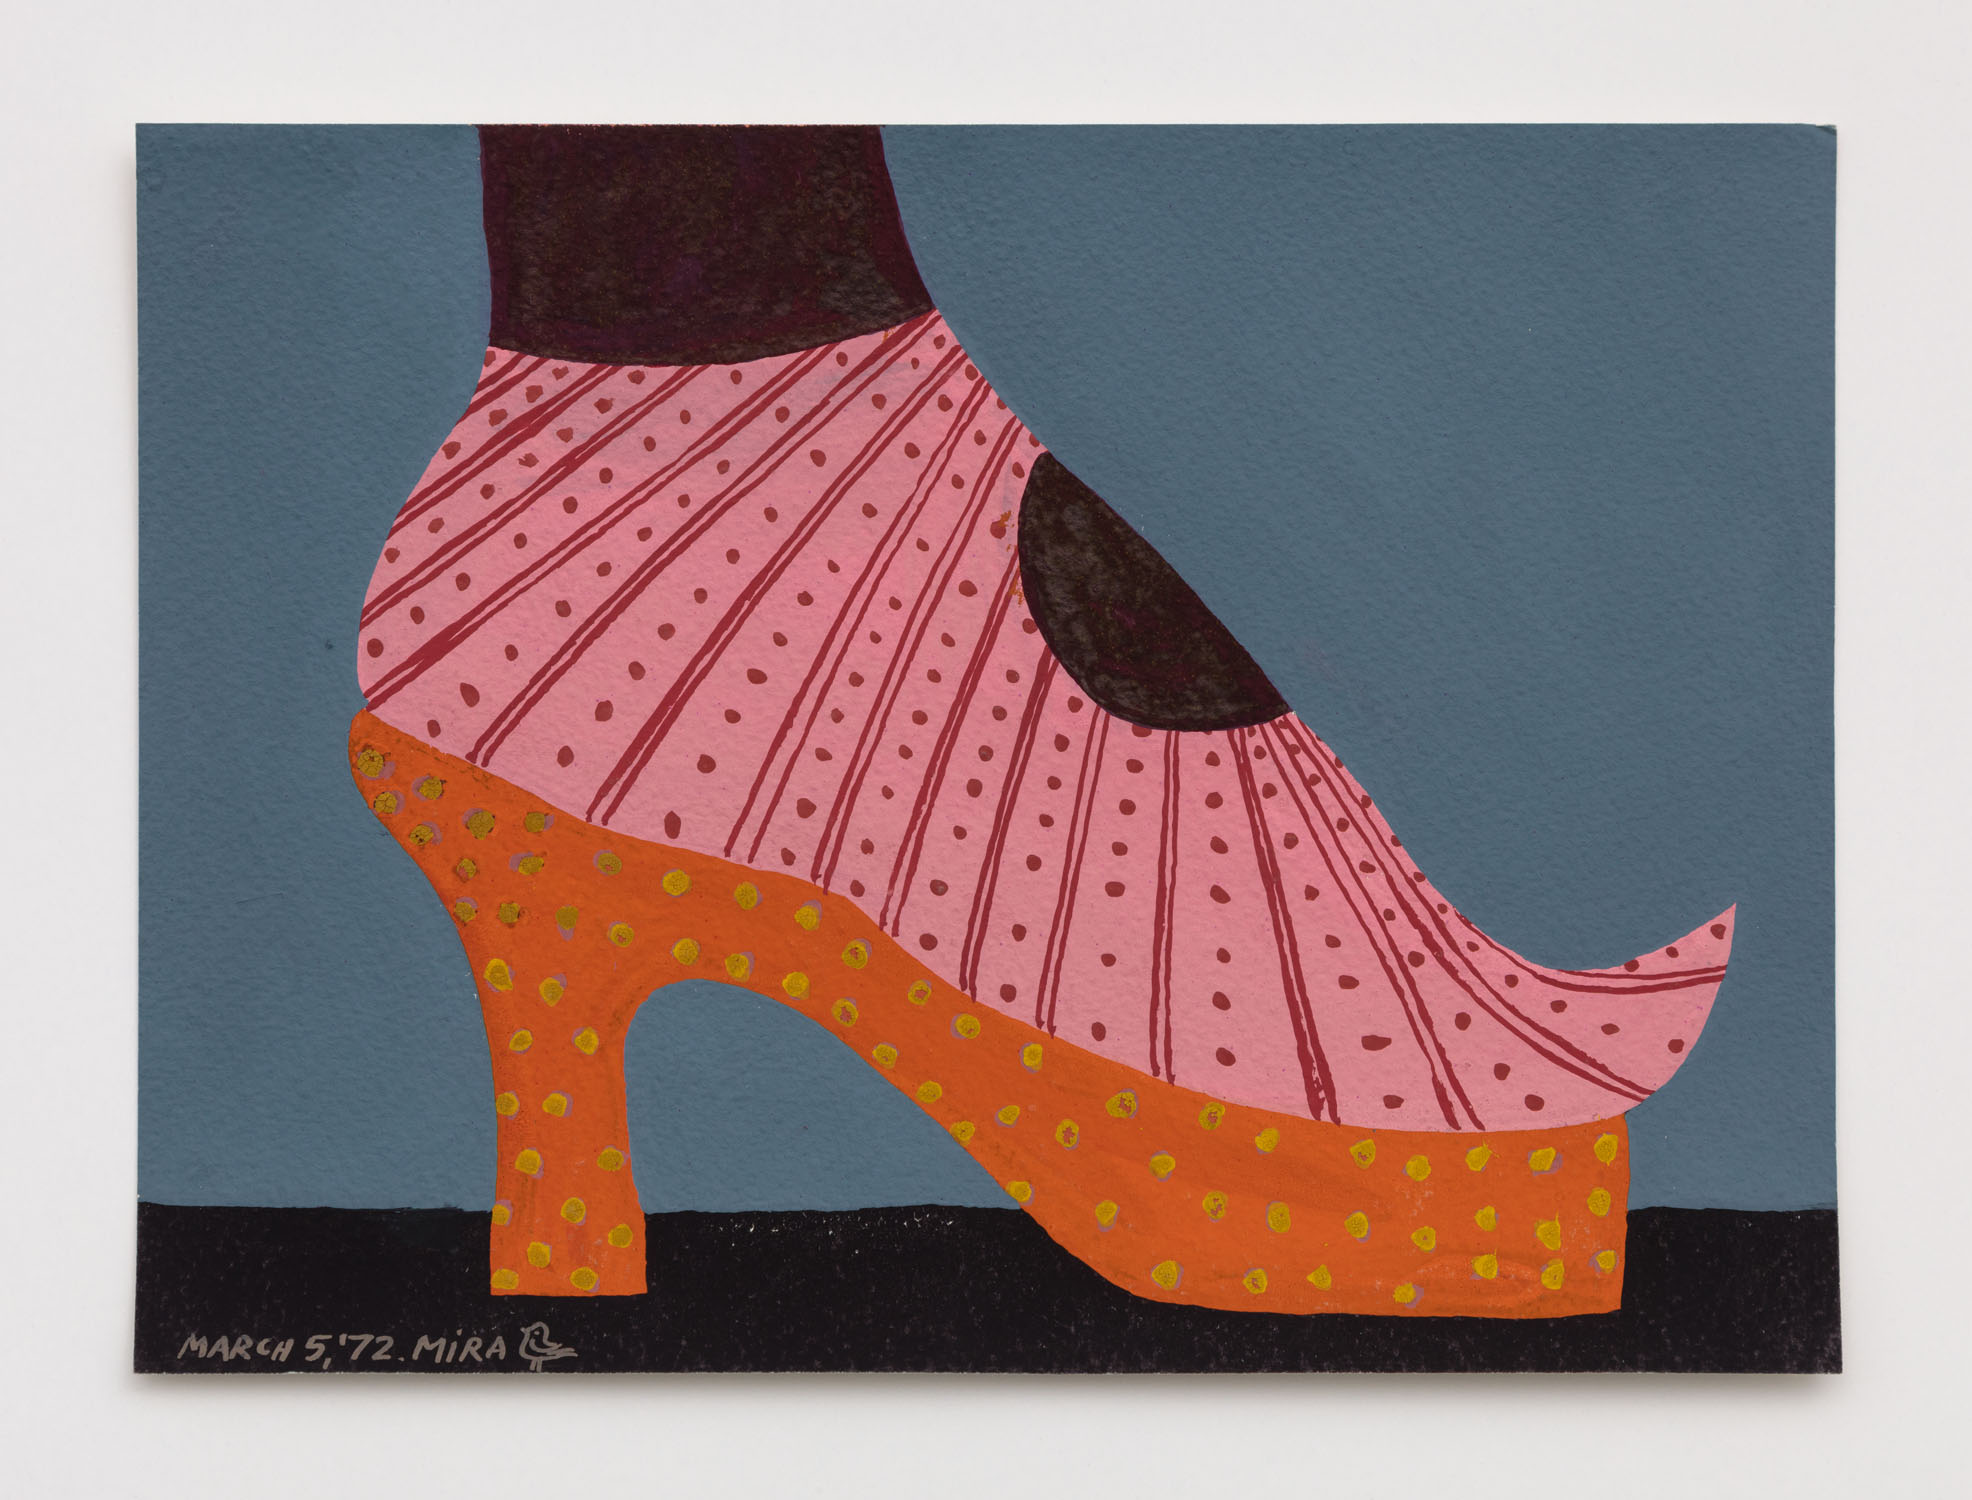 Mira Schor   Shoe , March 5, 1972  Gouache on paper  7 x 8.5 inches